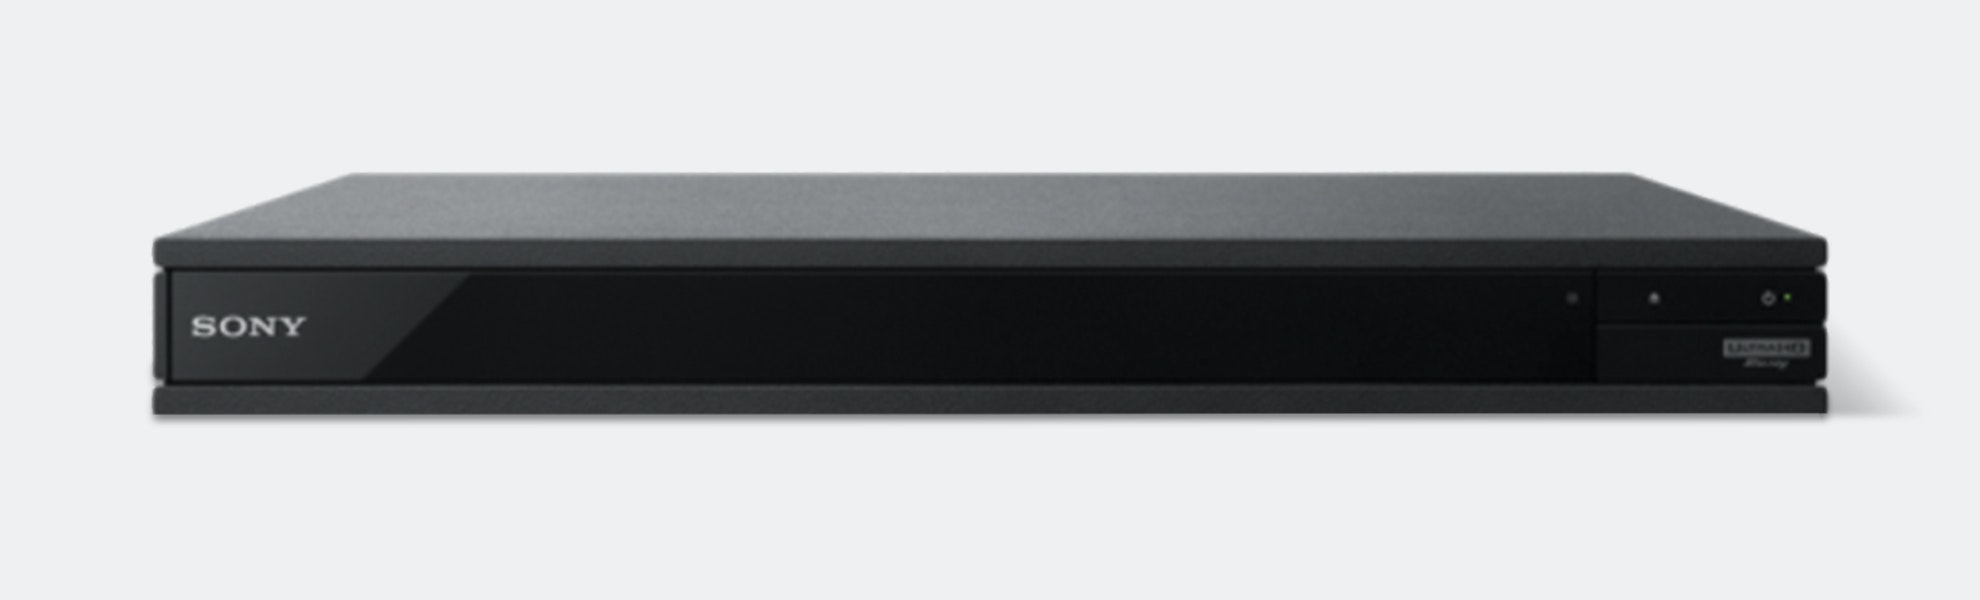 Sony 4K Ultra-HD Blu-ray Player (UBP-UX80)